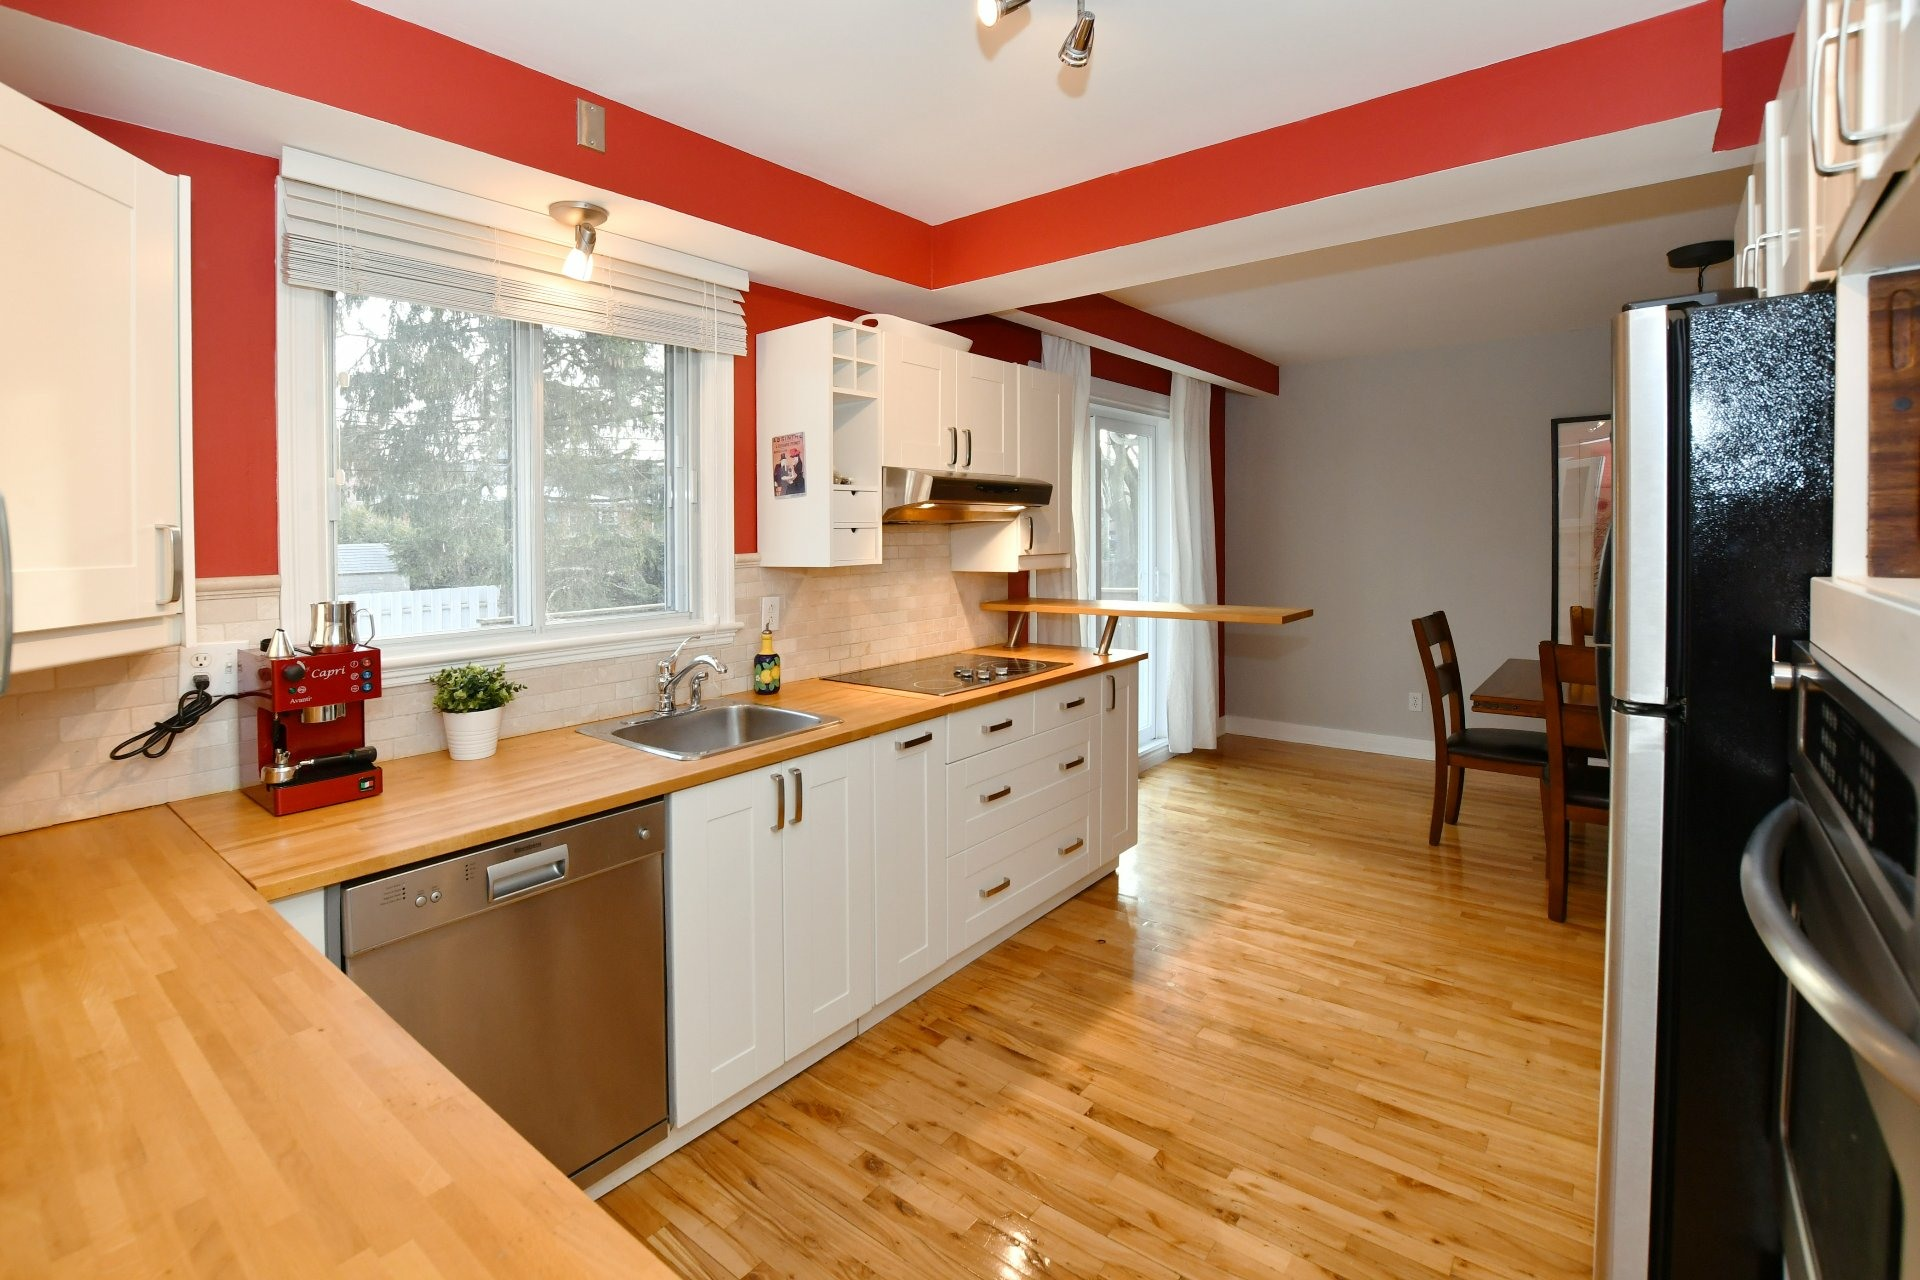 image 2 - House For sale Pointe-Claire - 10 rooms